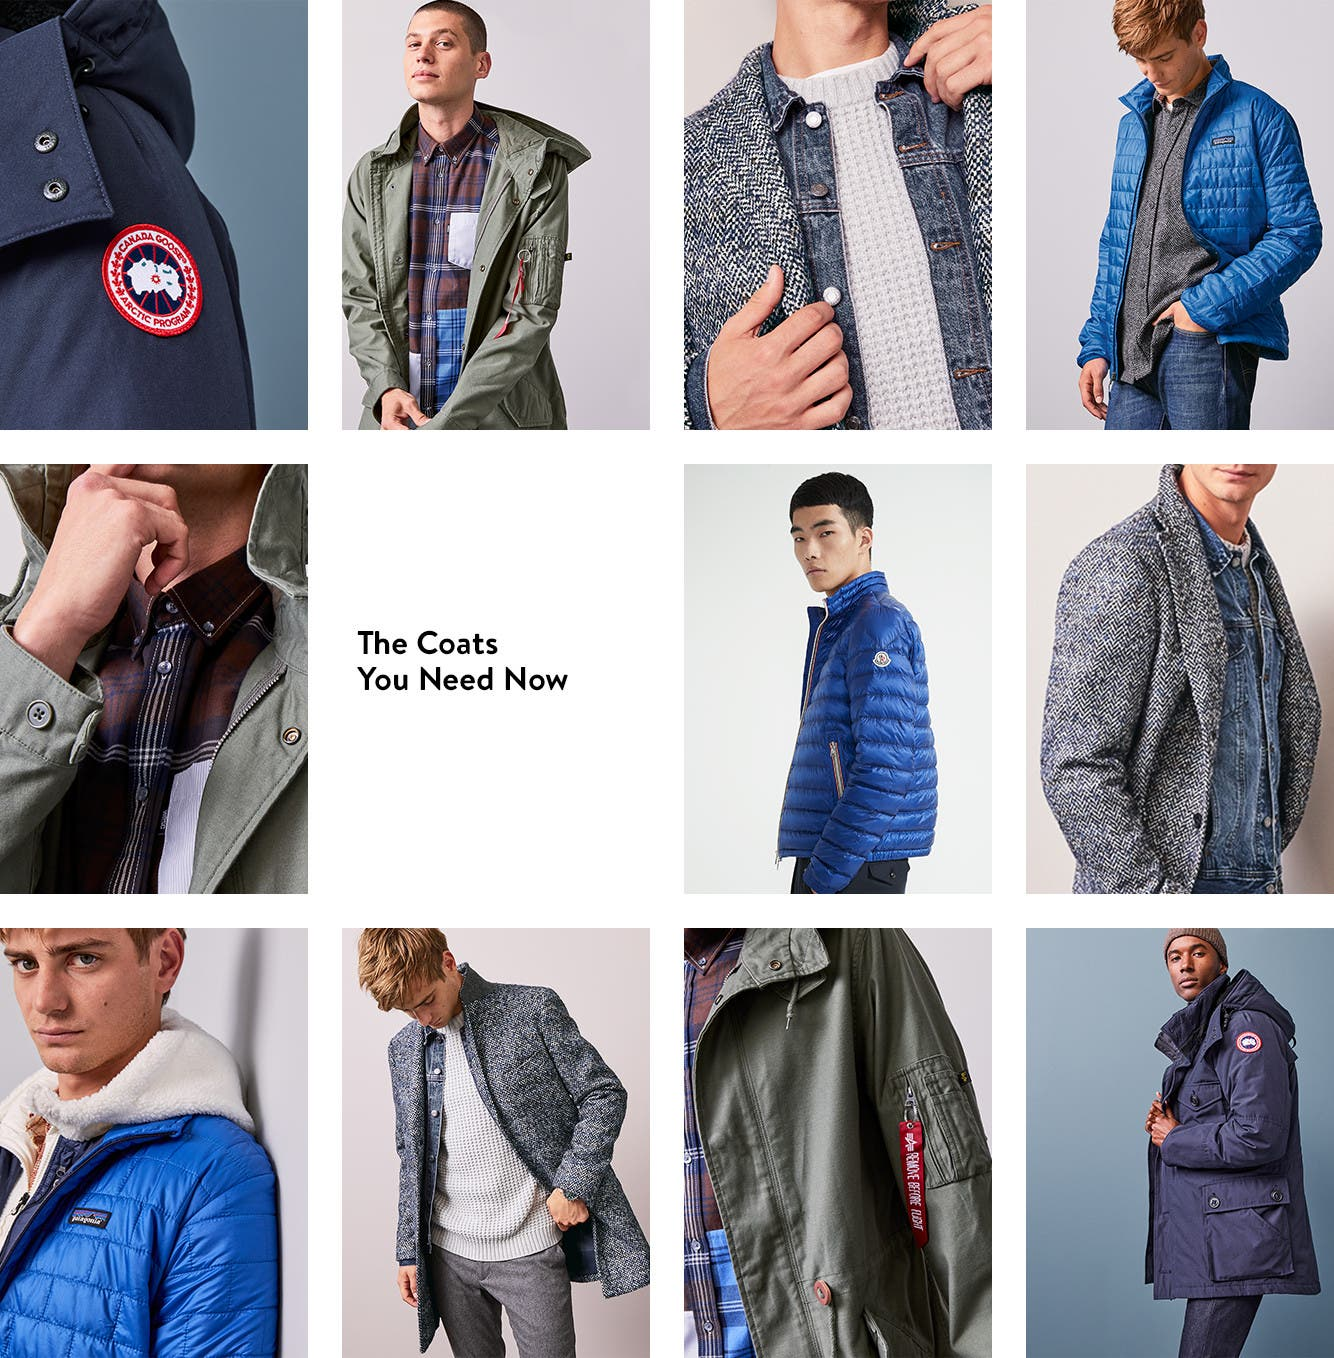 The coats you need now: coats for men.